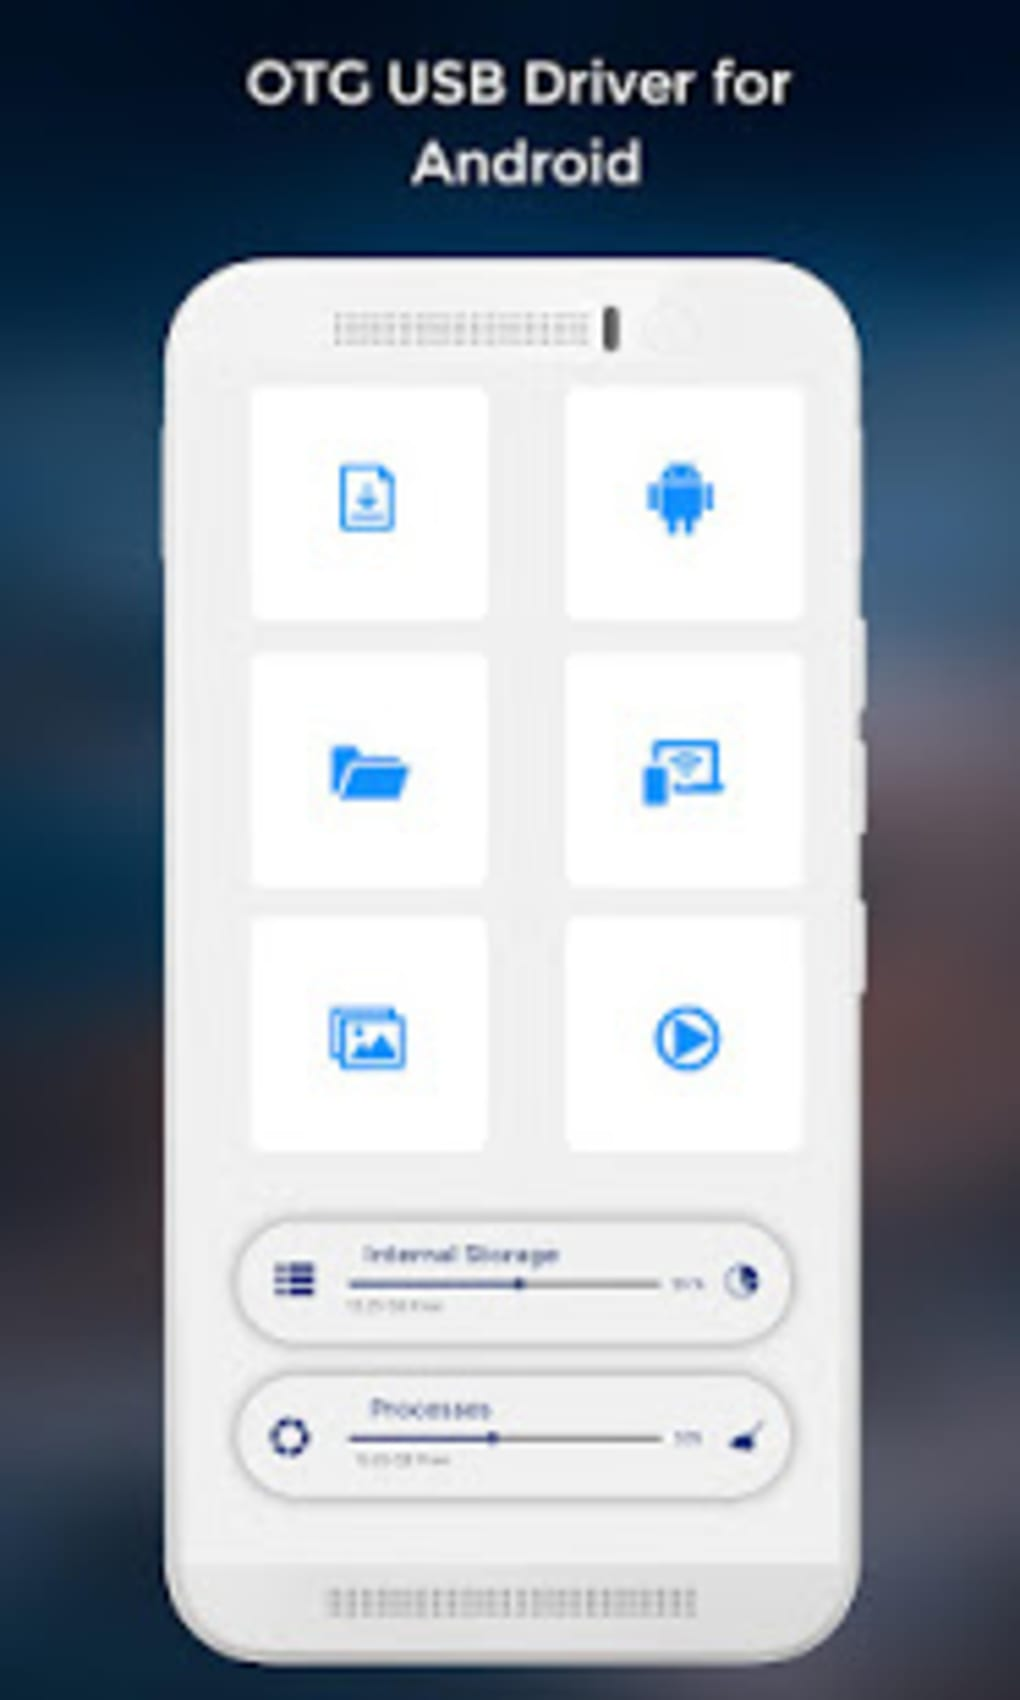 OTG USB Driver For Android (Android) - Download